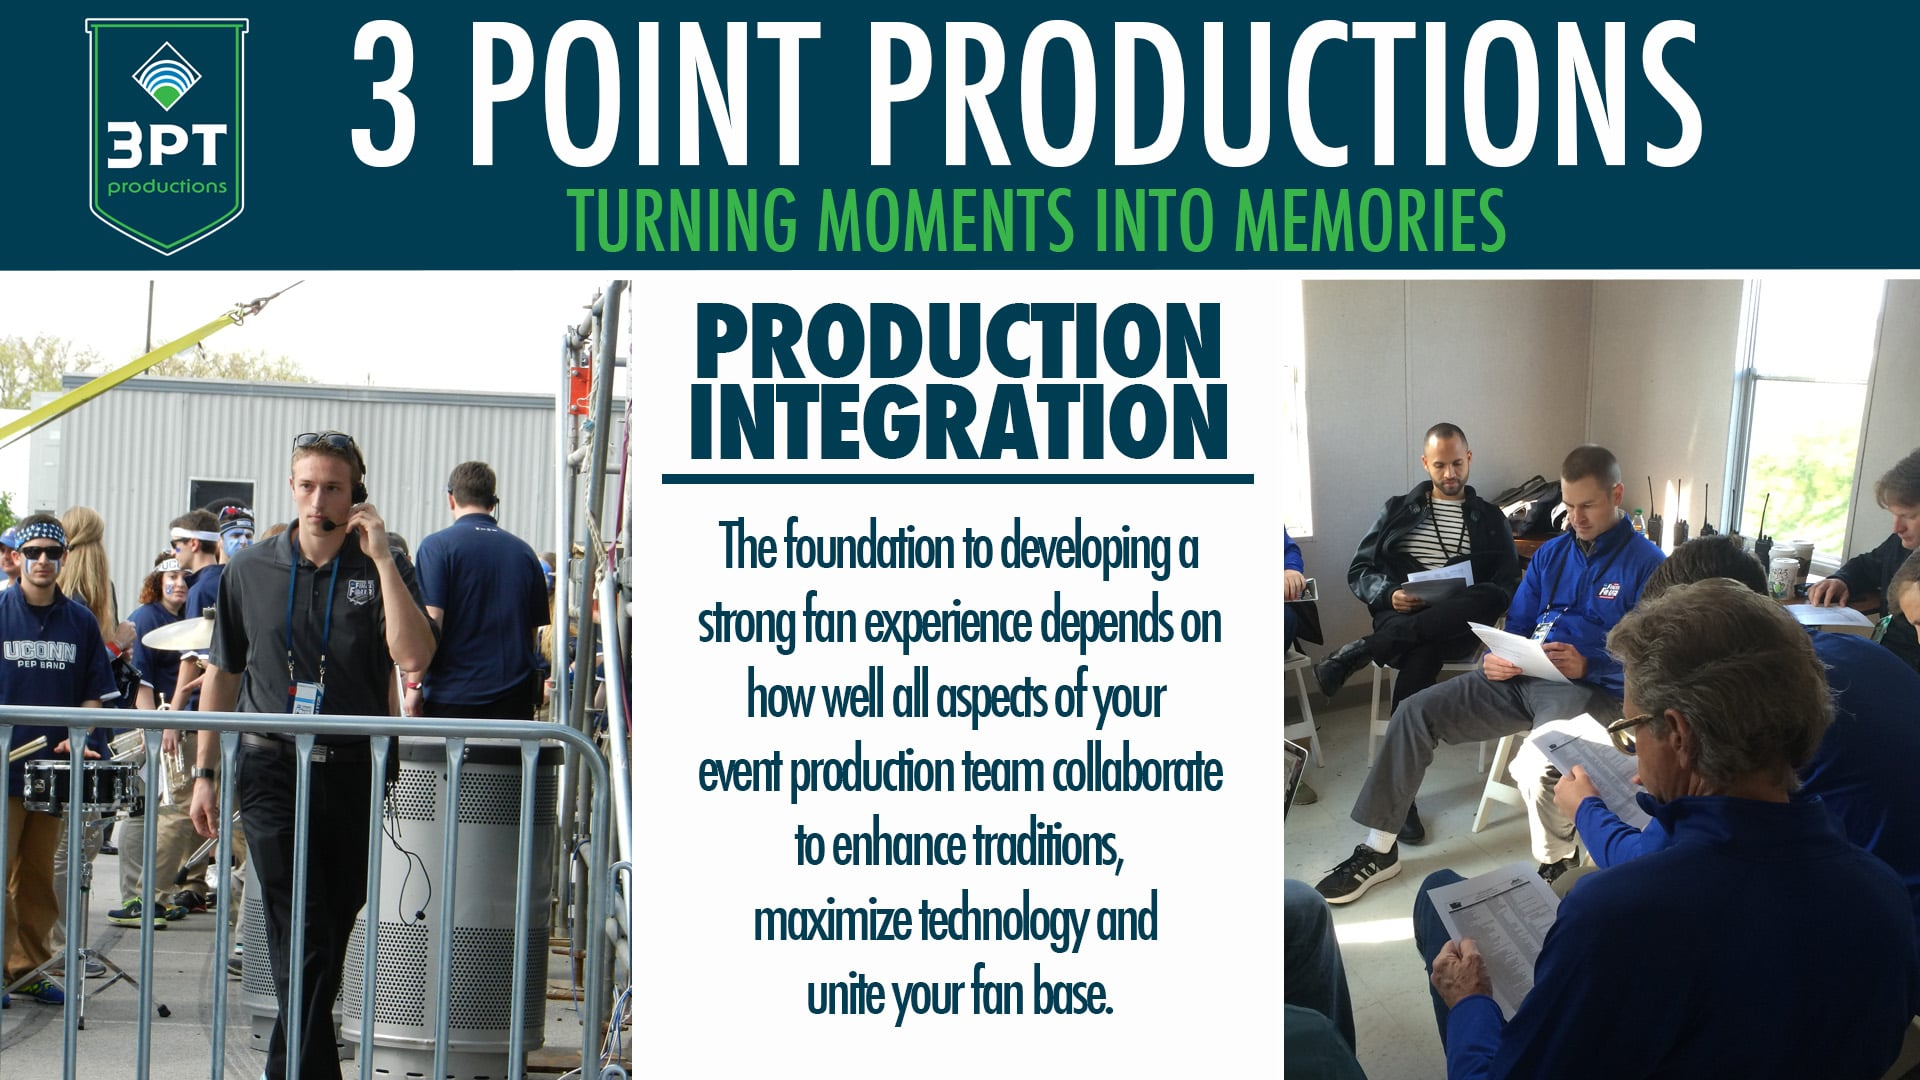 DECK_3PointConsulting_ProductionIntegration_2.jpg